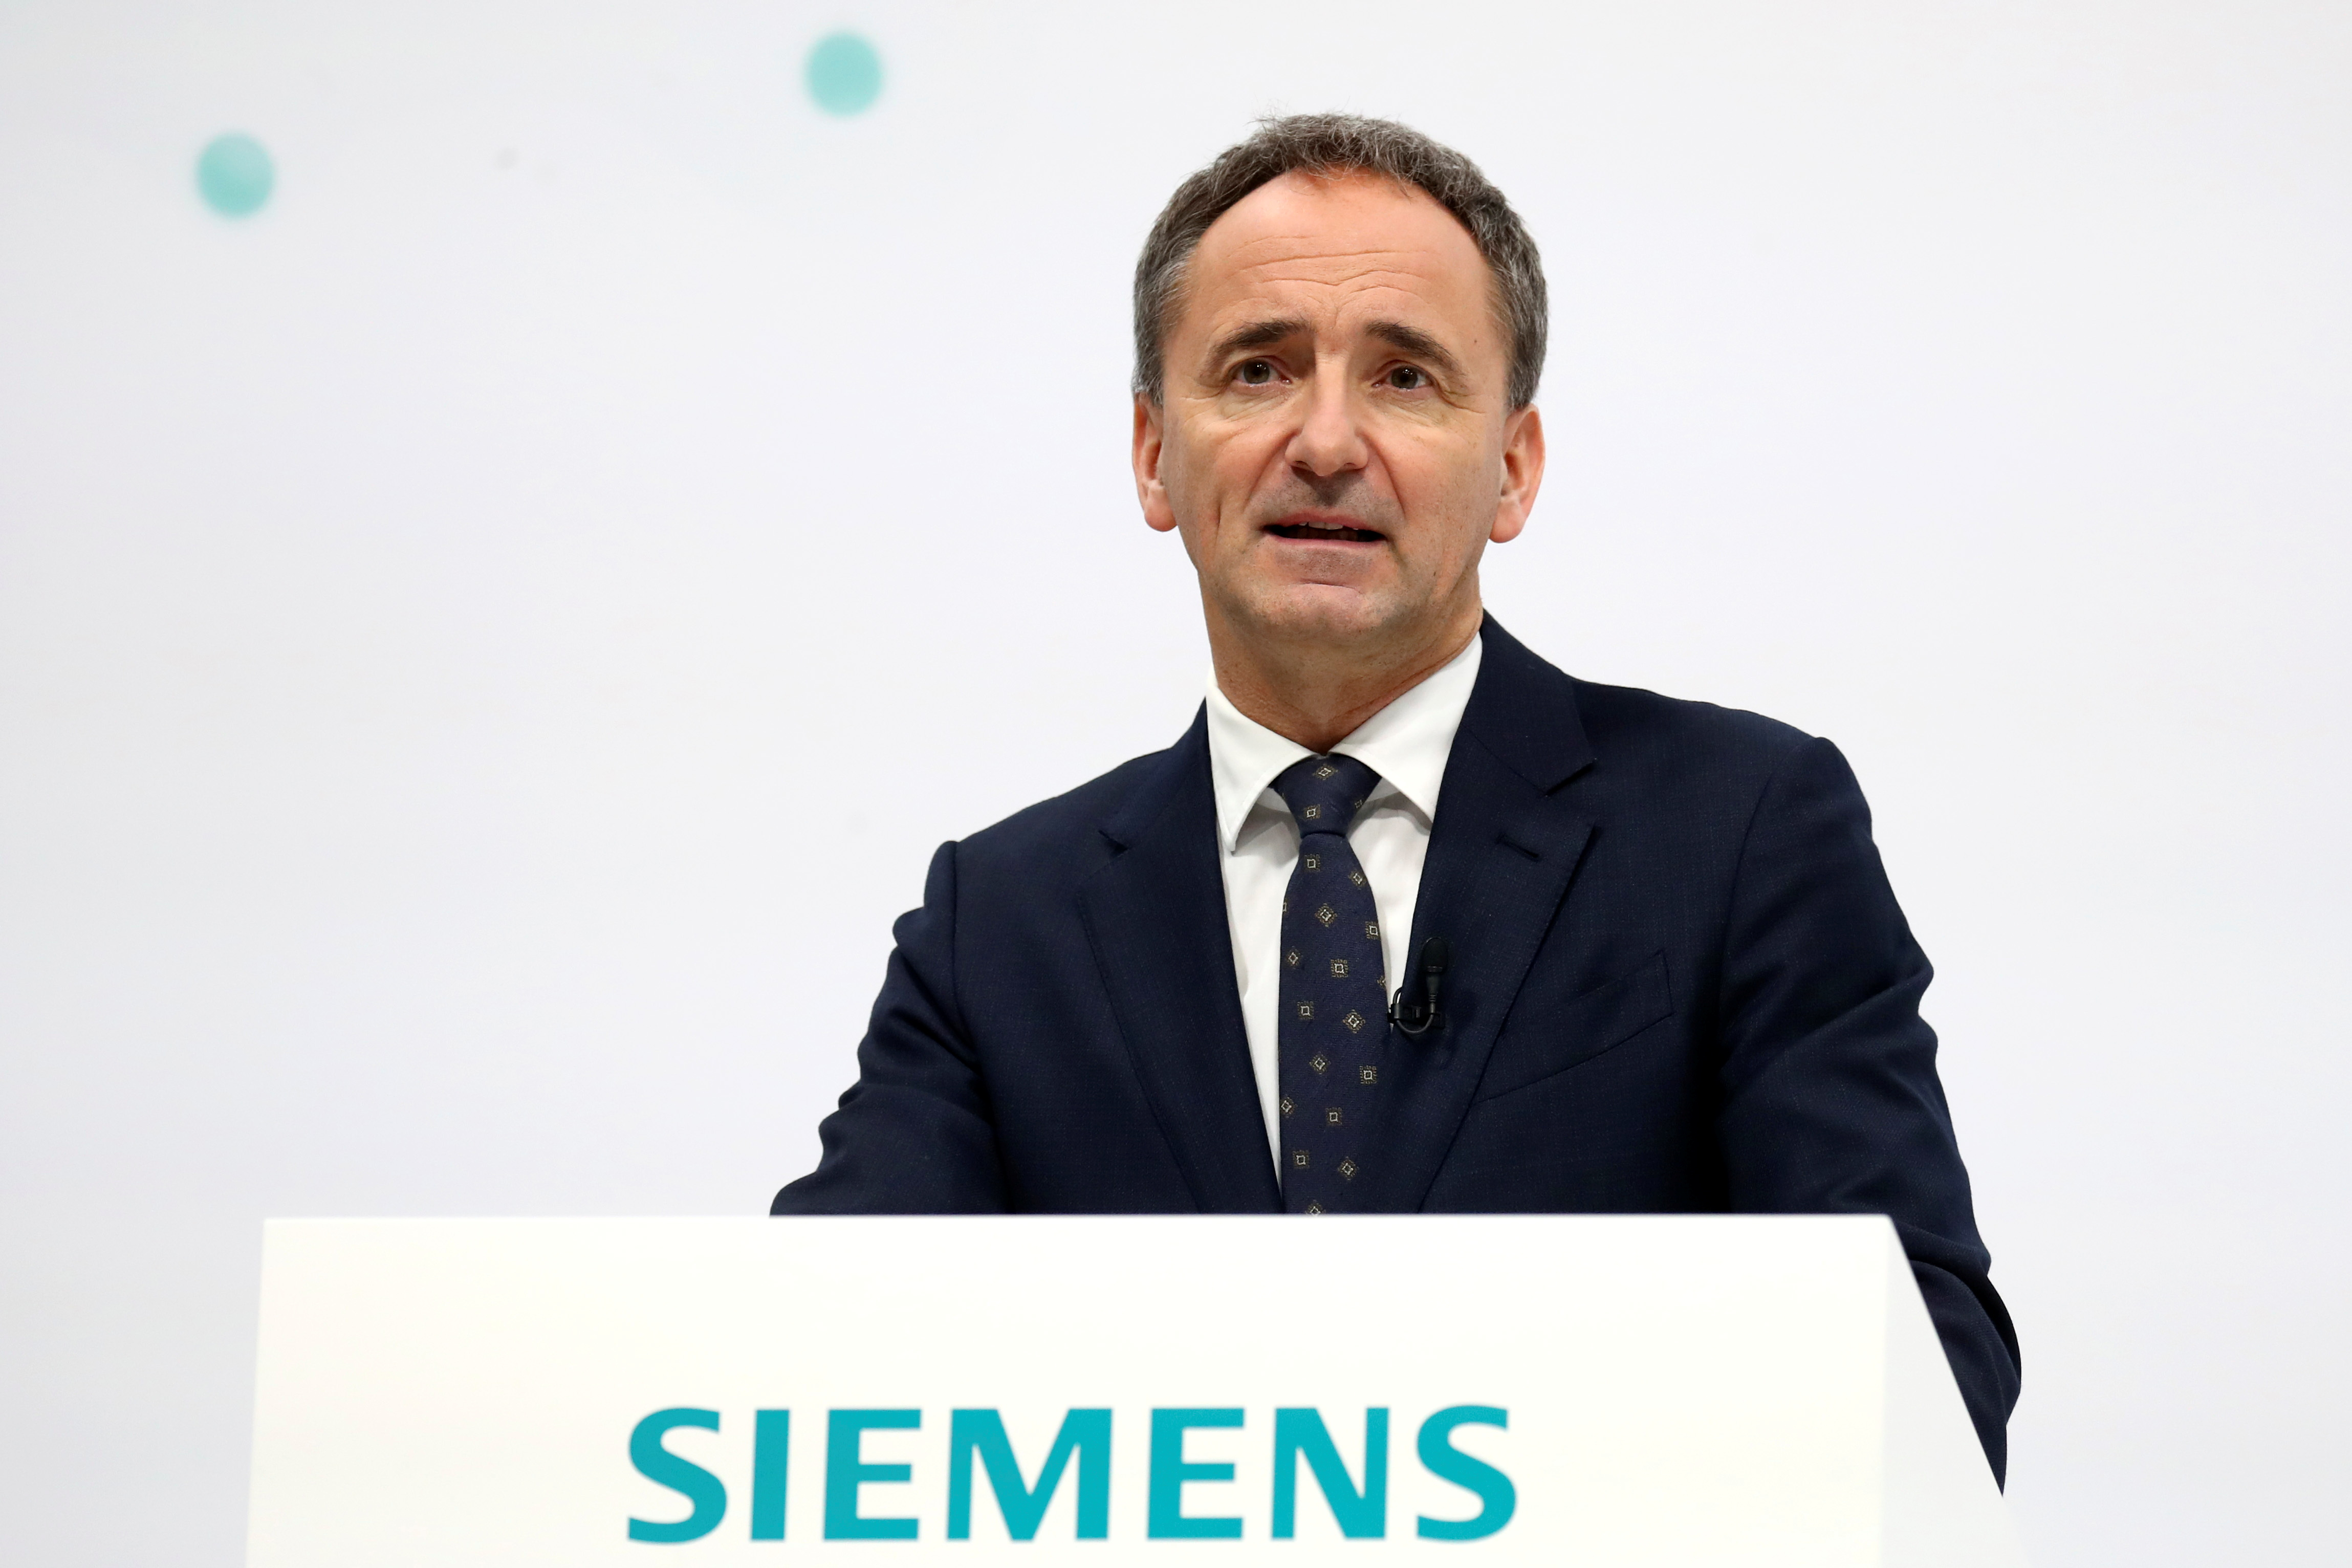 Jim Hagemann Snabe, chairman of the supervisory board of industrial conglomerate Siemens, delivers his speech during the virtual annual shareholders meeting in Munich, Germany, February 3, 2021. Matthias Schrader/Pool via REUTERS